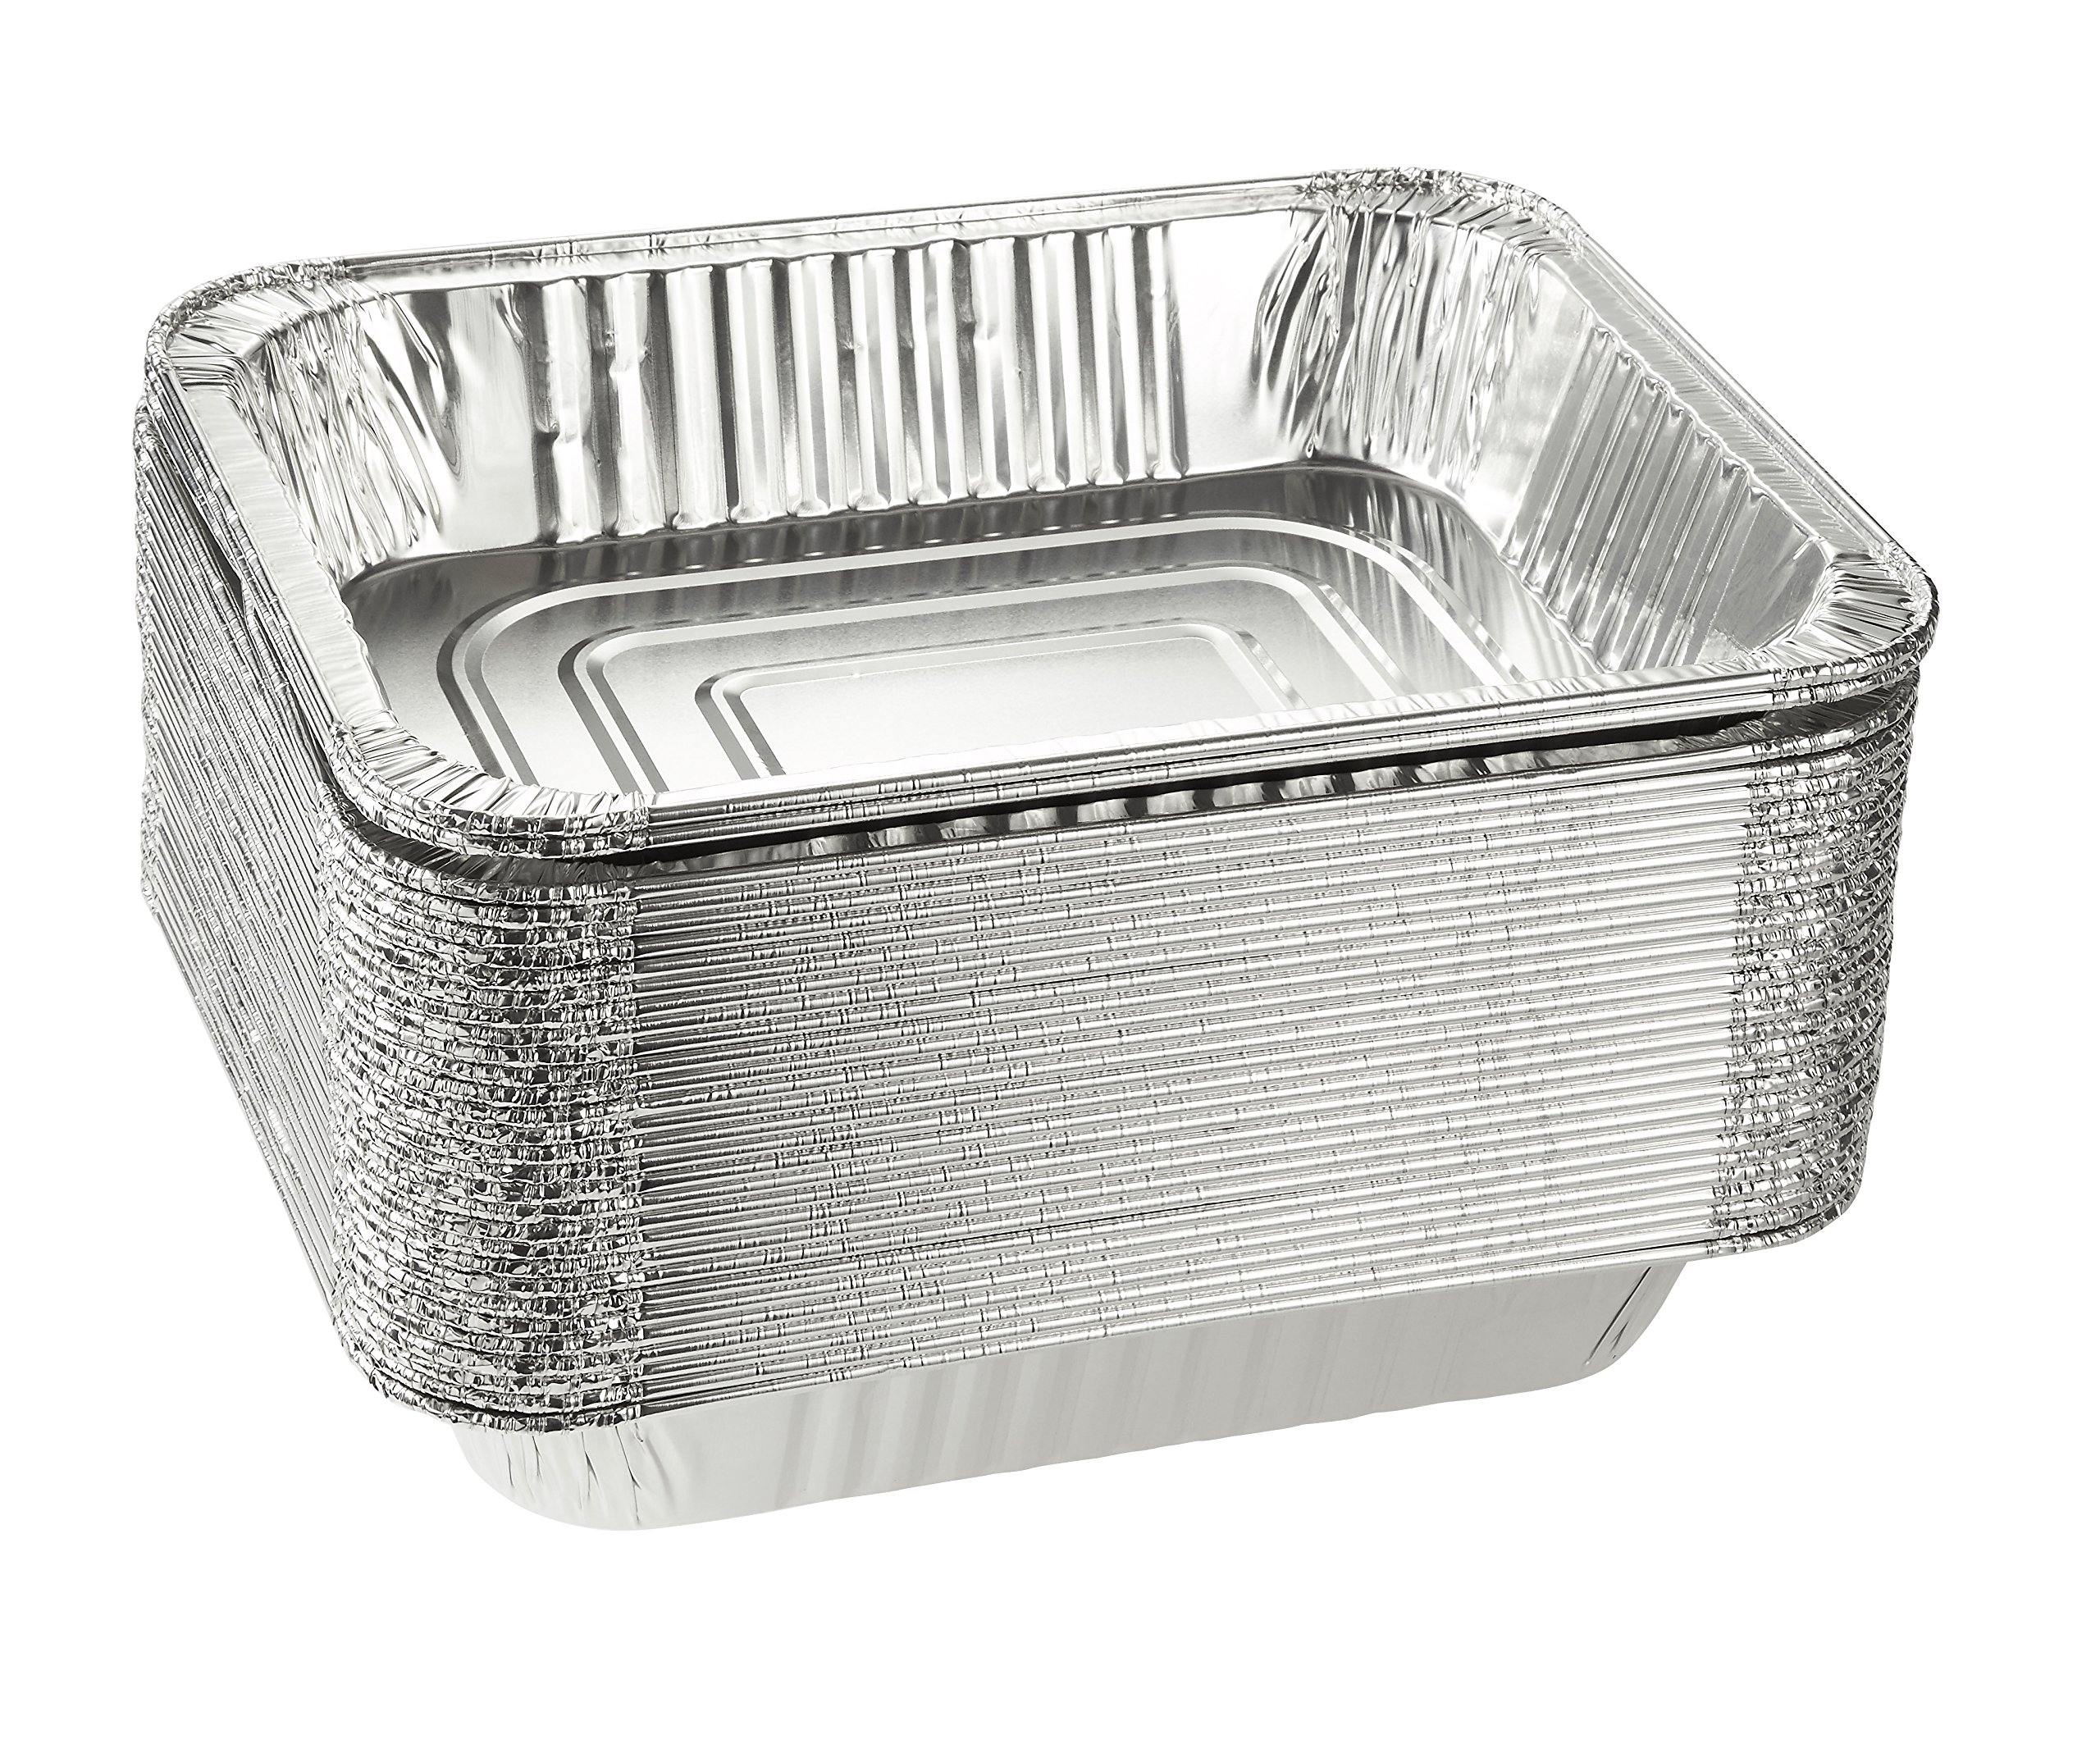 Aluminum Foil Pans - 30-Piece Half-Size Deep Disposable Steam Table Pans for Baking, Roasting, Broiling, Cooking, 12.75 x 2.25 x 10.25 Inches